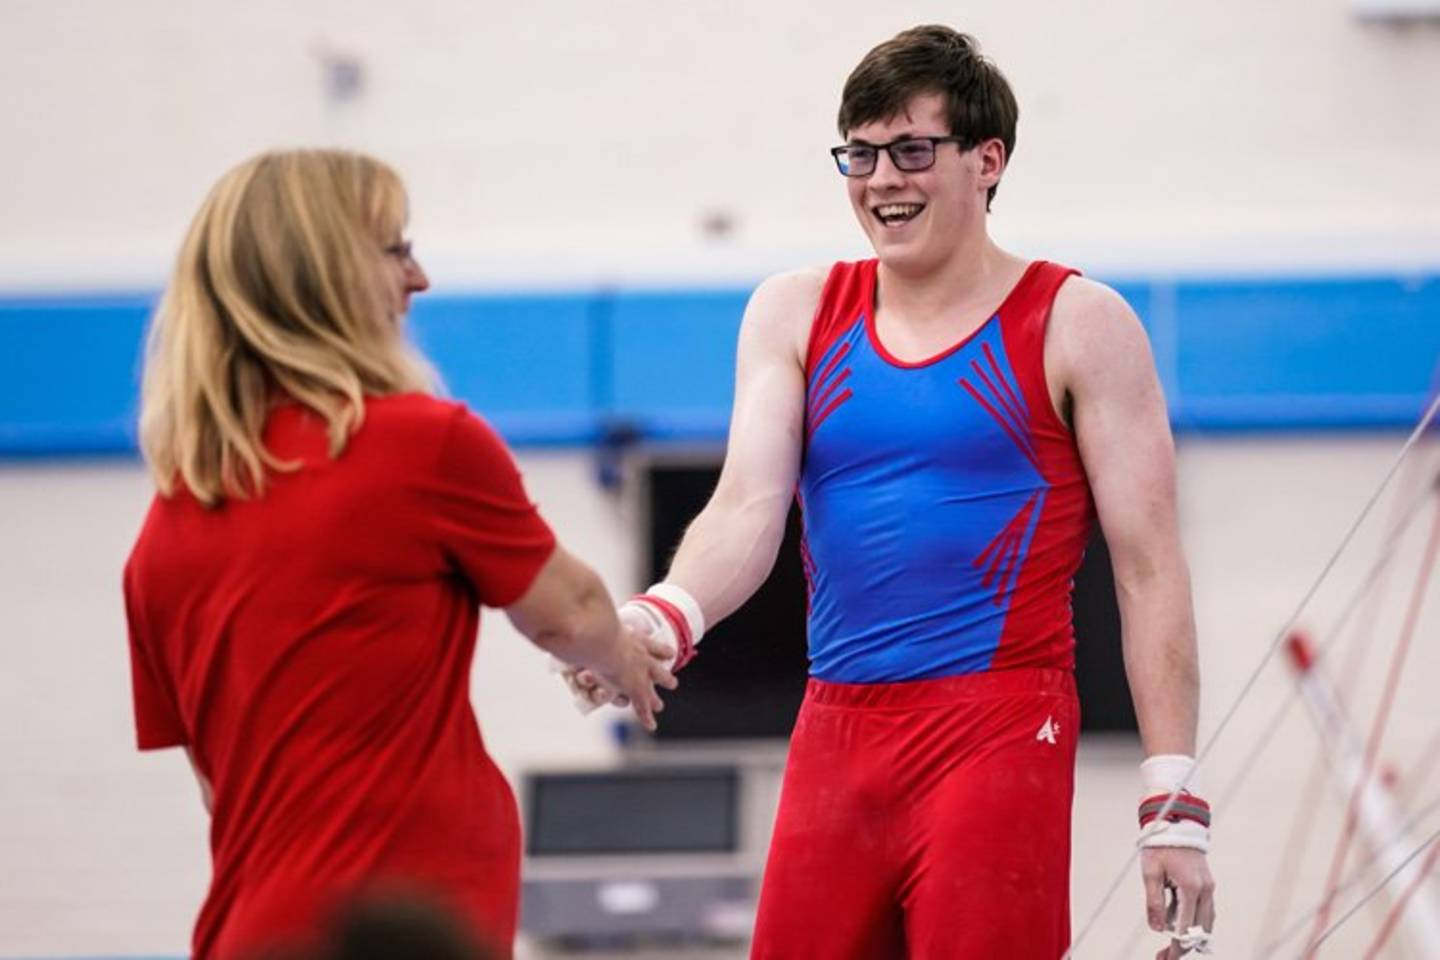 Male disabled gymnast smiling and giving his coach a high five